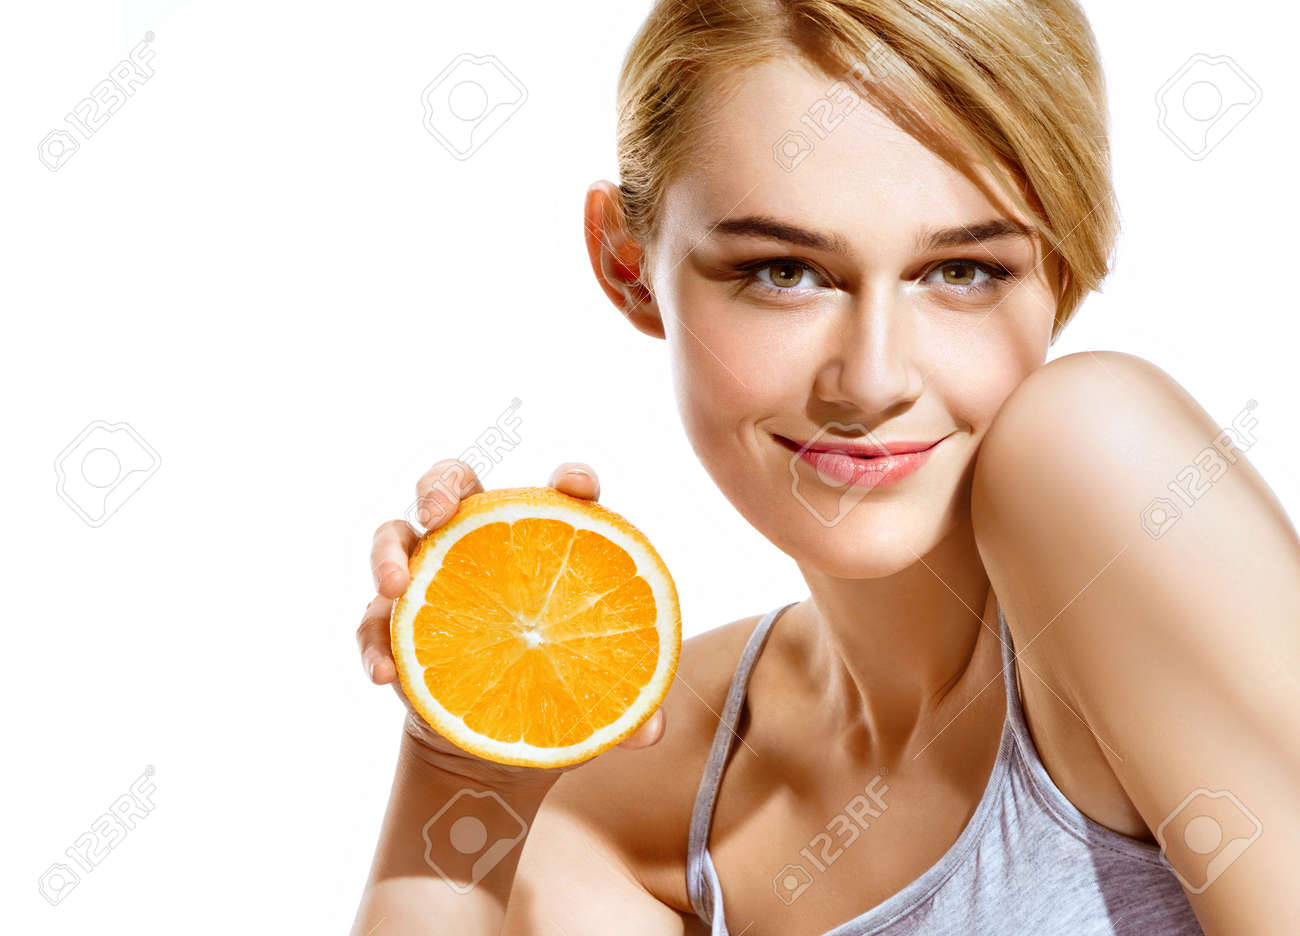 Smiling young girl holding oranges halves on white background. Great food for healthy lifestyle - 76975313